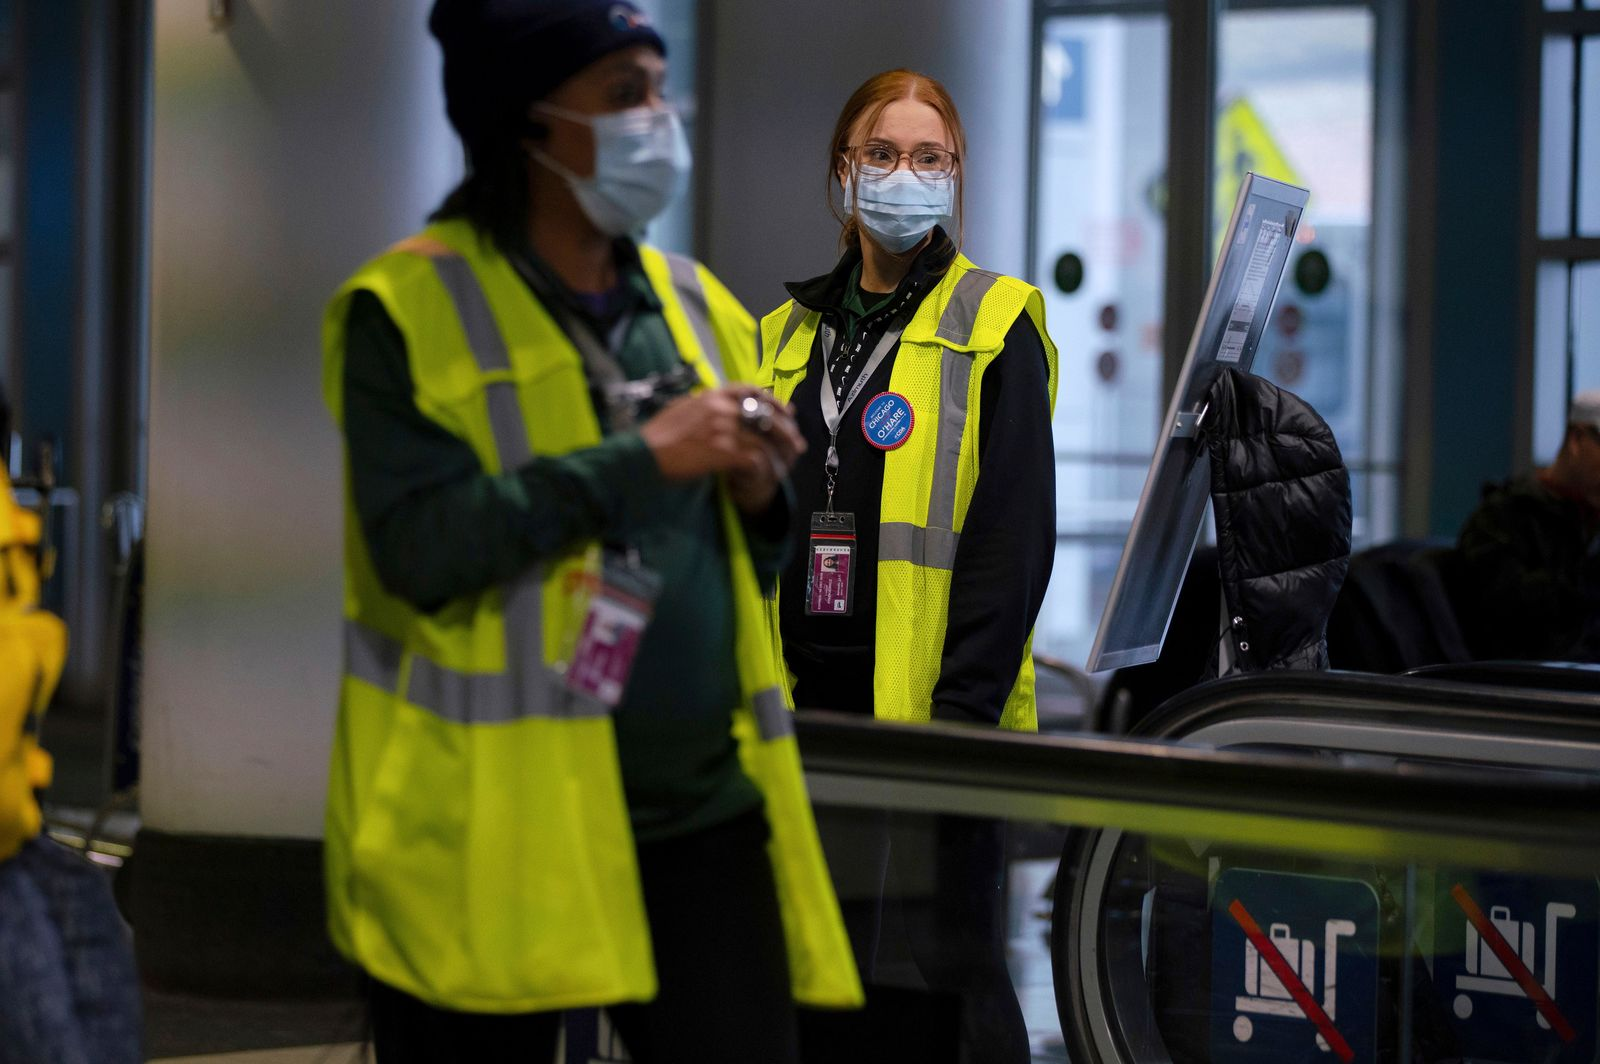 Airport employees wear face masks in Terminal 5 at O'Hare International Airport, Friday, Jan. 24, 2020 in Chicago. A Chicago woman has become the second U.S. patient diagnosed with the dangerous new virus from China, health officials announced Friday. (E. Jason Wambsgans/Chicago Tribune via AP)